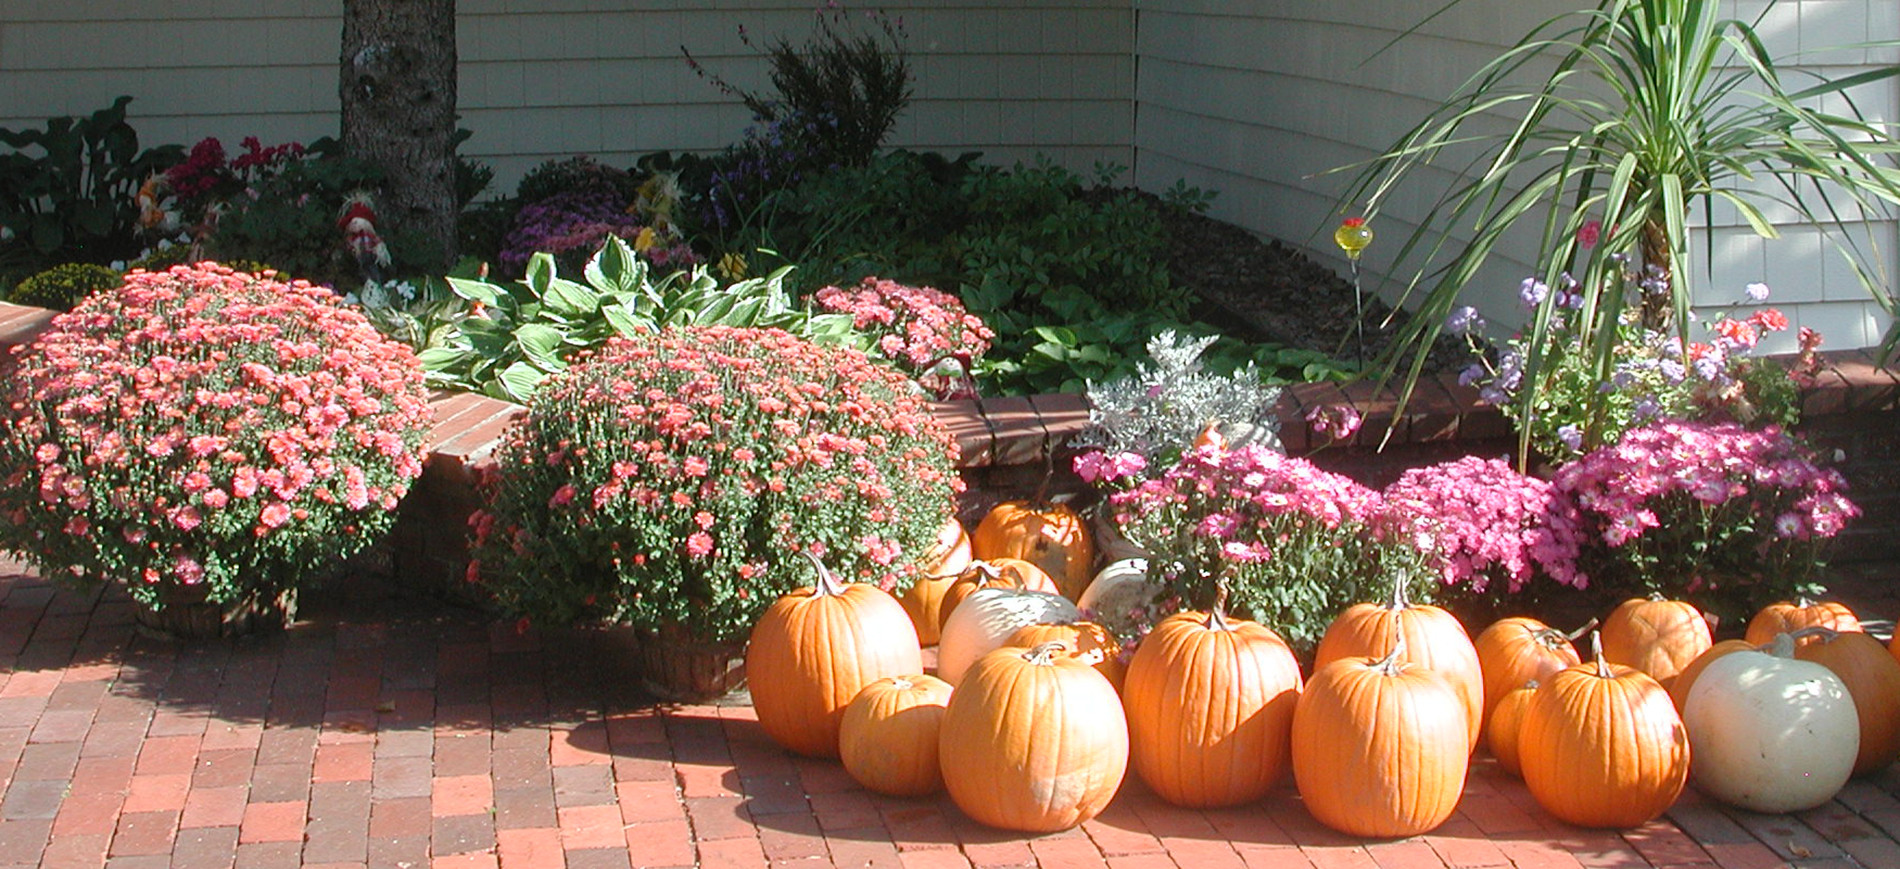 Inn at Ellis River entrance with fall flowers & pumpkins